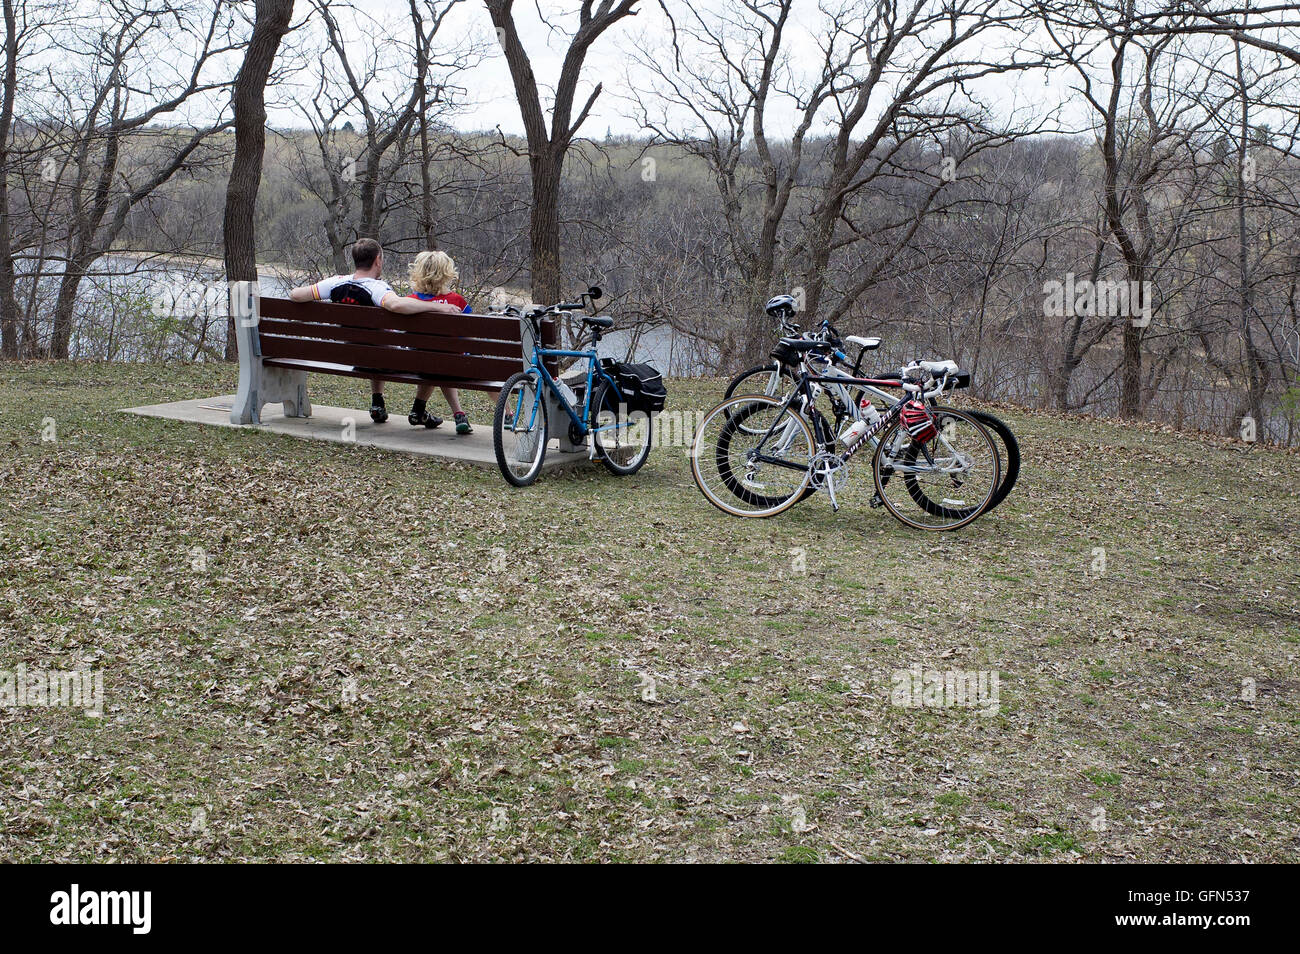 Bicycling couple resting on park bench overlooking the Mississippi River. Mississippi River Boulevard, St Paul Minnesota - Stock Image